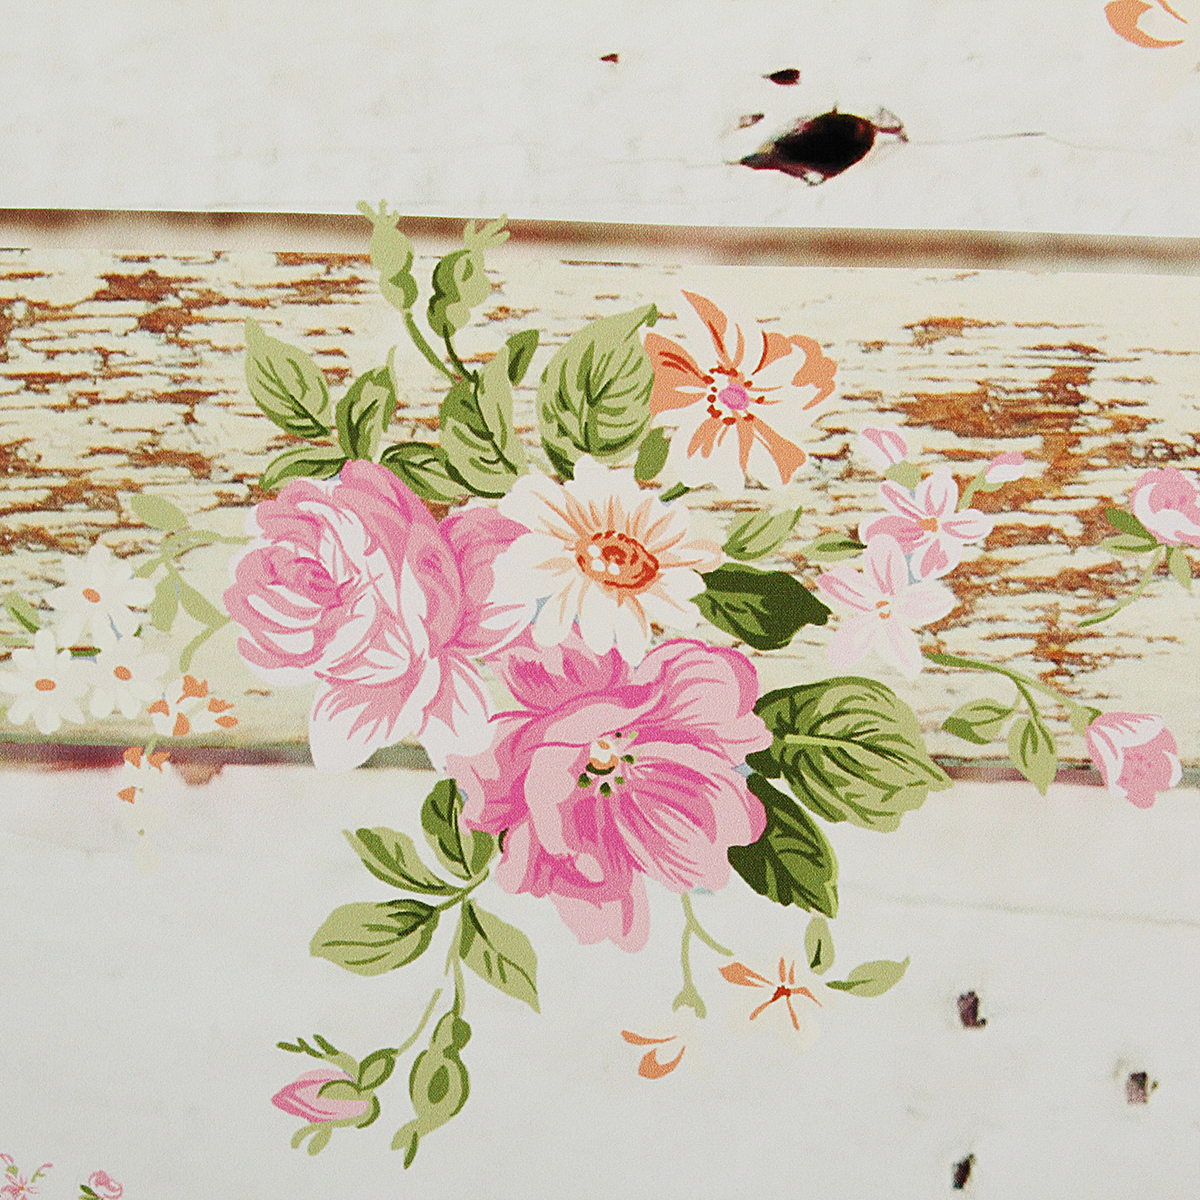 5x7FT Vintage Pink Flowers Wooden Floor Wall Photo Studio Background Backdrop Cloth